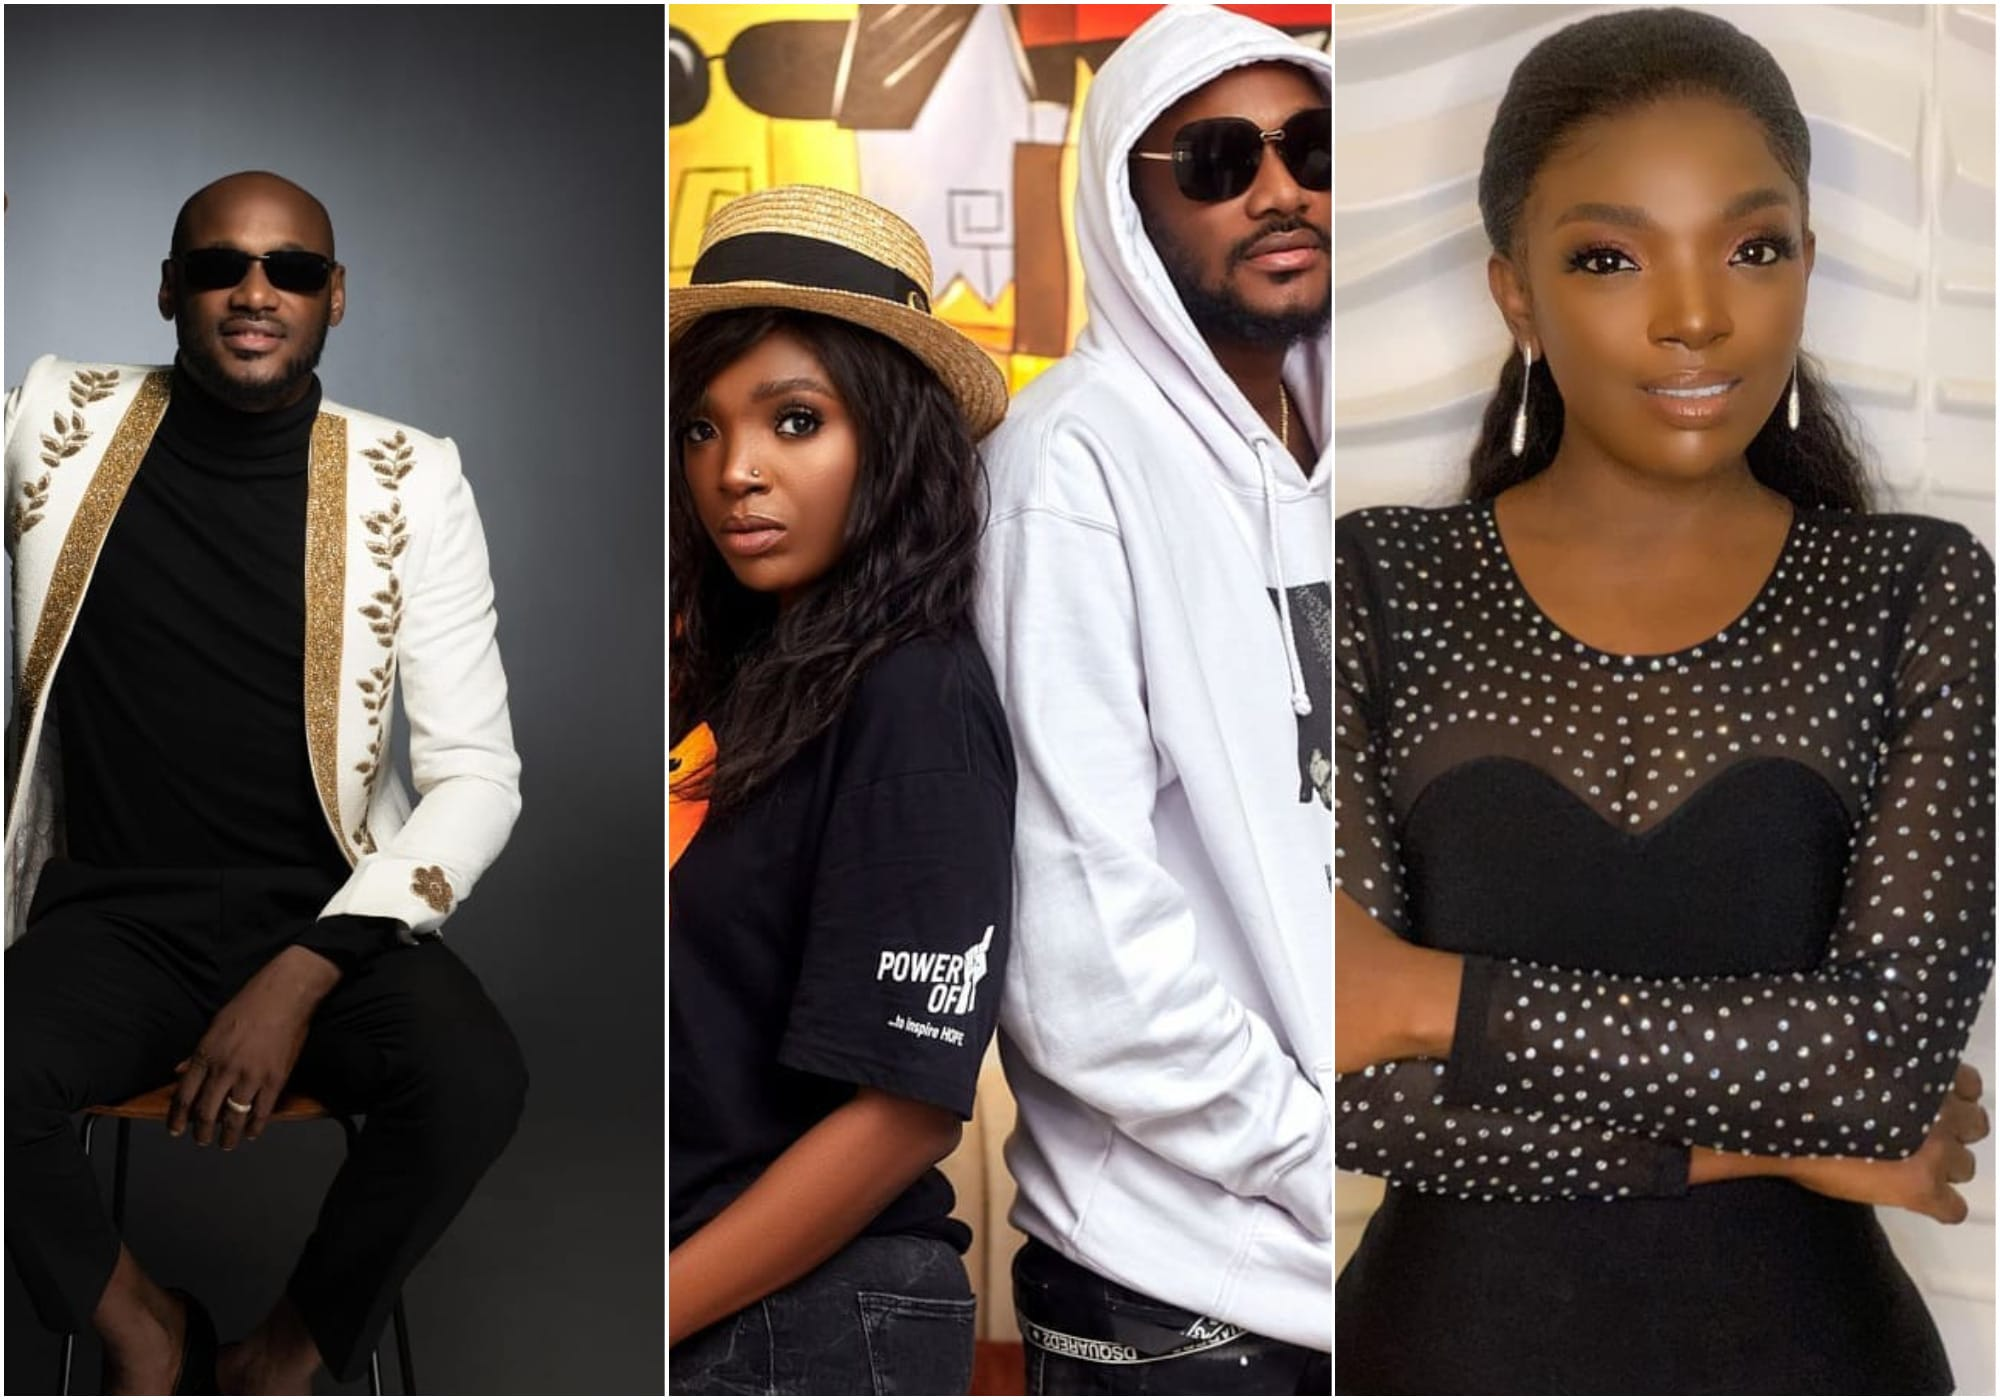 2Face remain silent as wife drags their marriage on social media